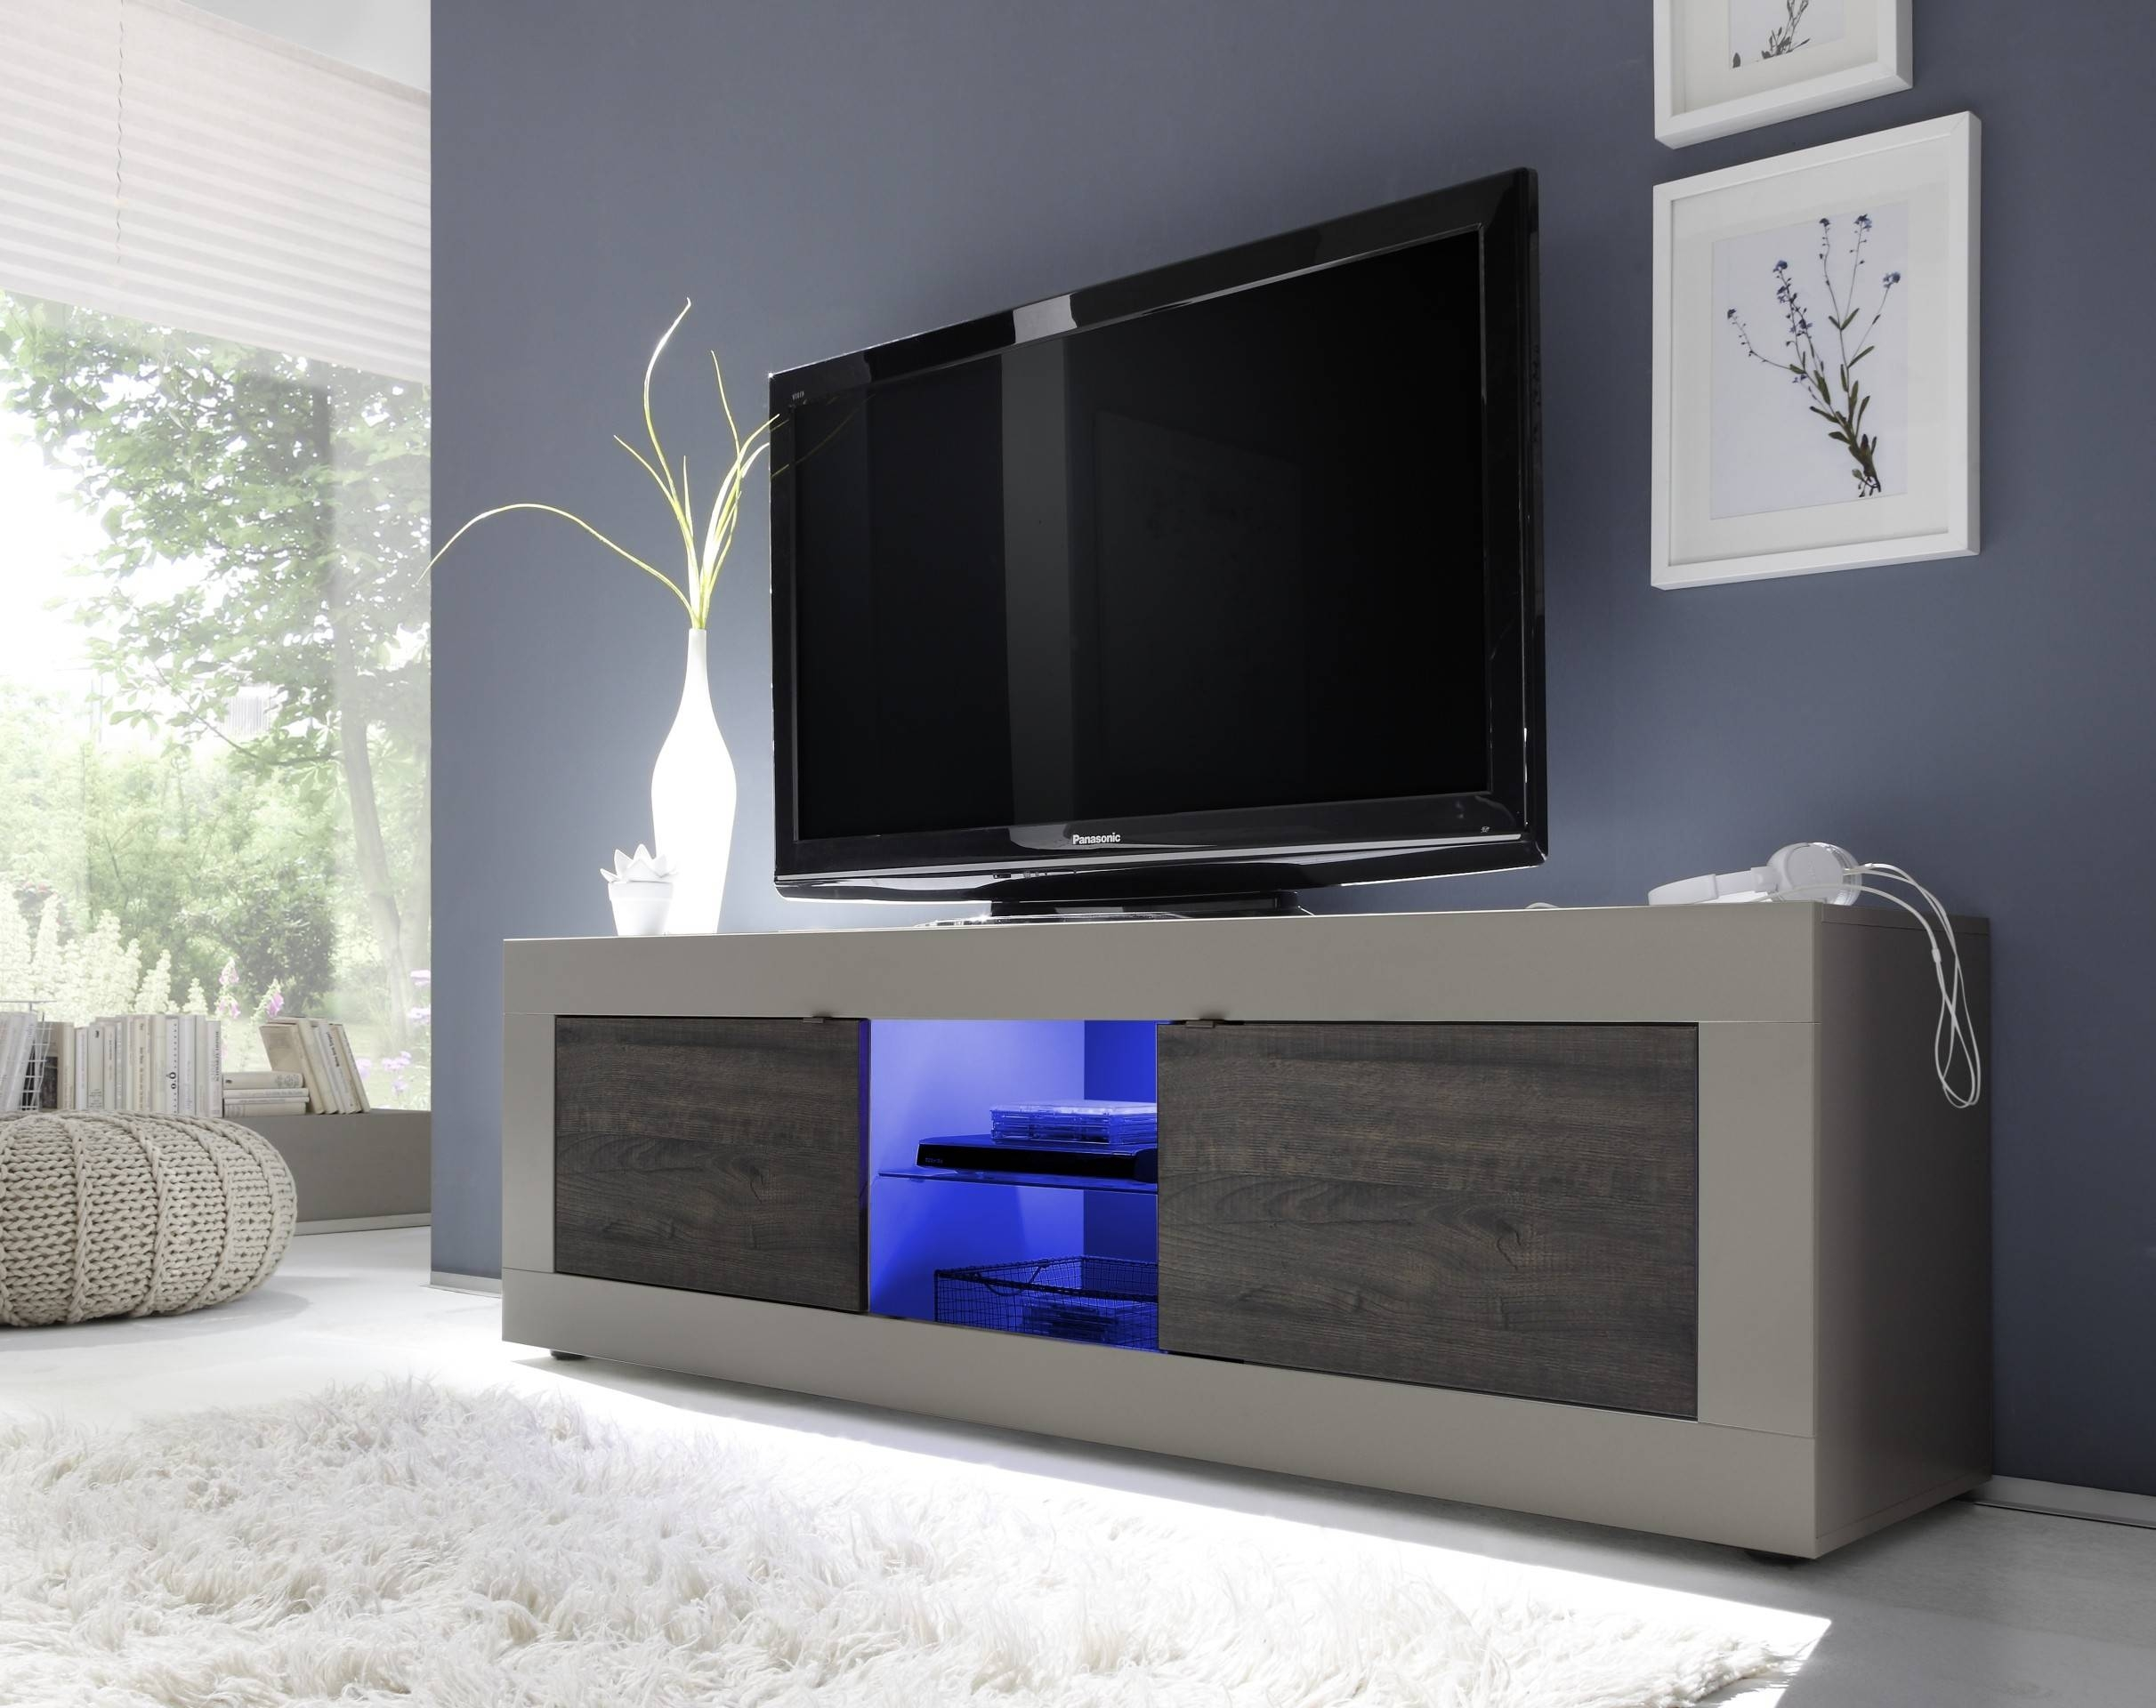 Luxury Trendy Tv Stands 69 For With Trendy Tv Stands – Home Throughout Trendy Tv Stands (View 10 of 15)